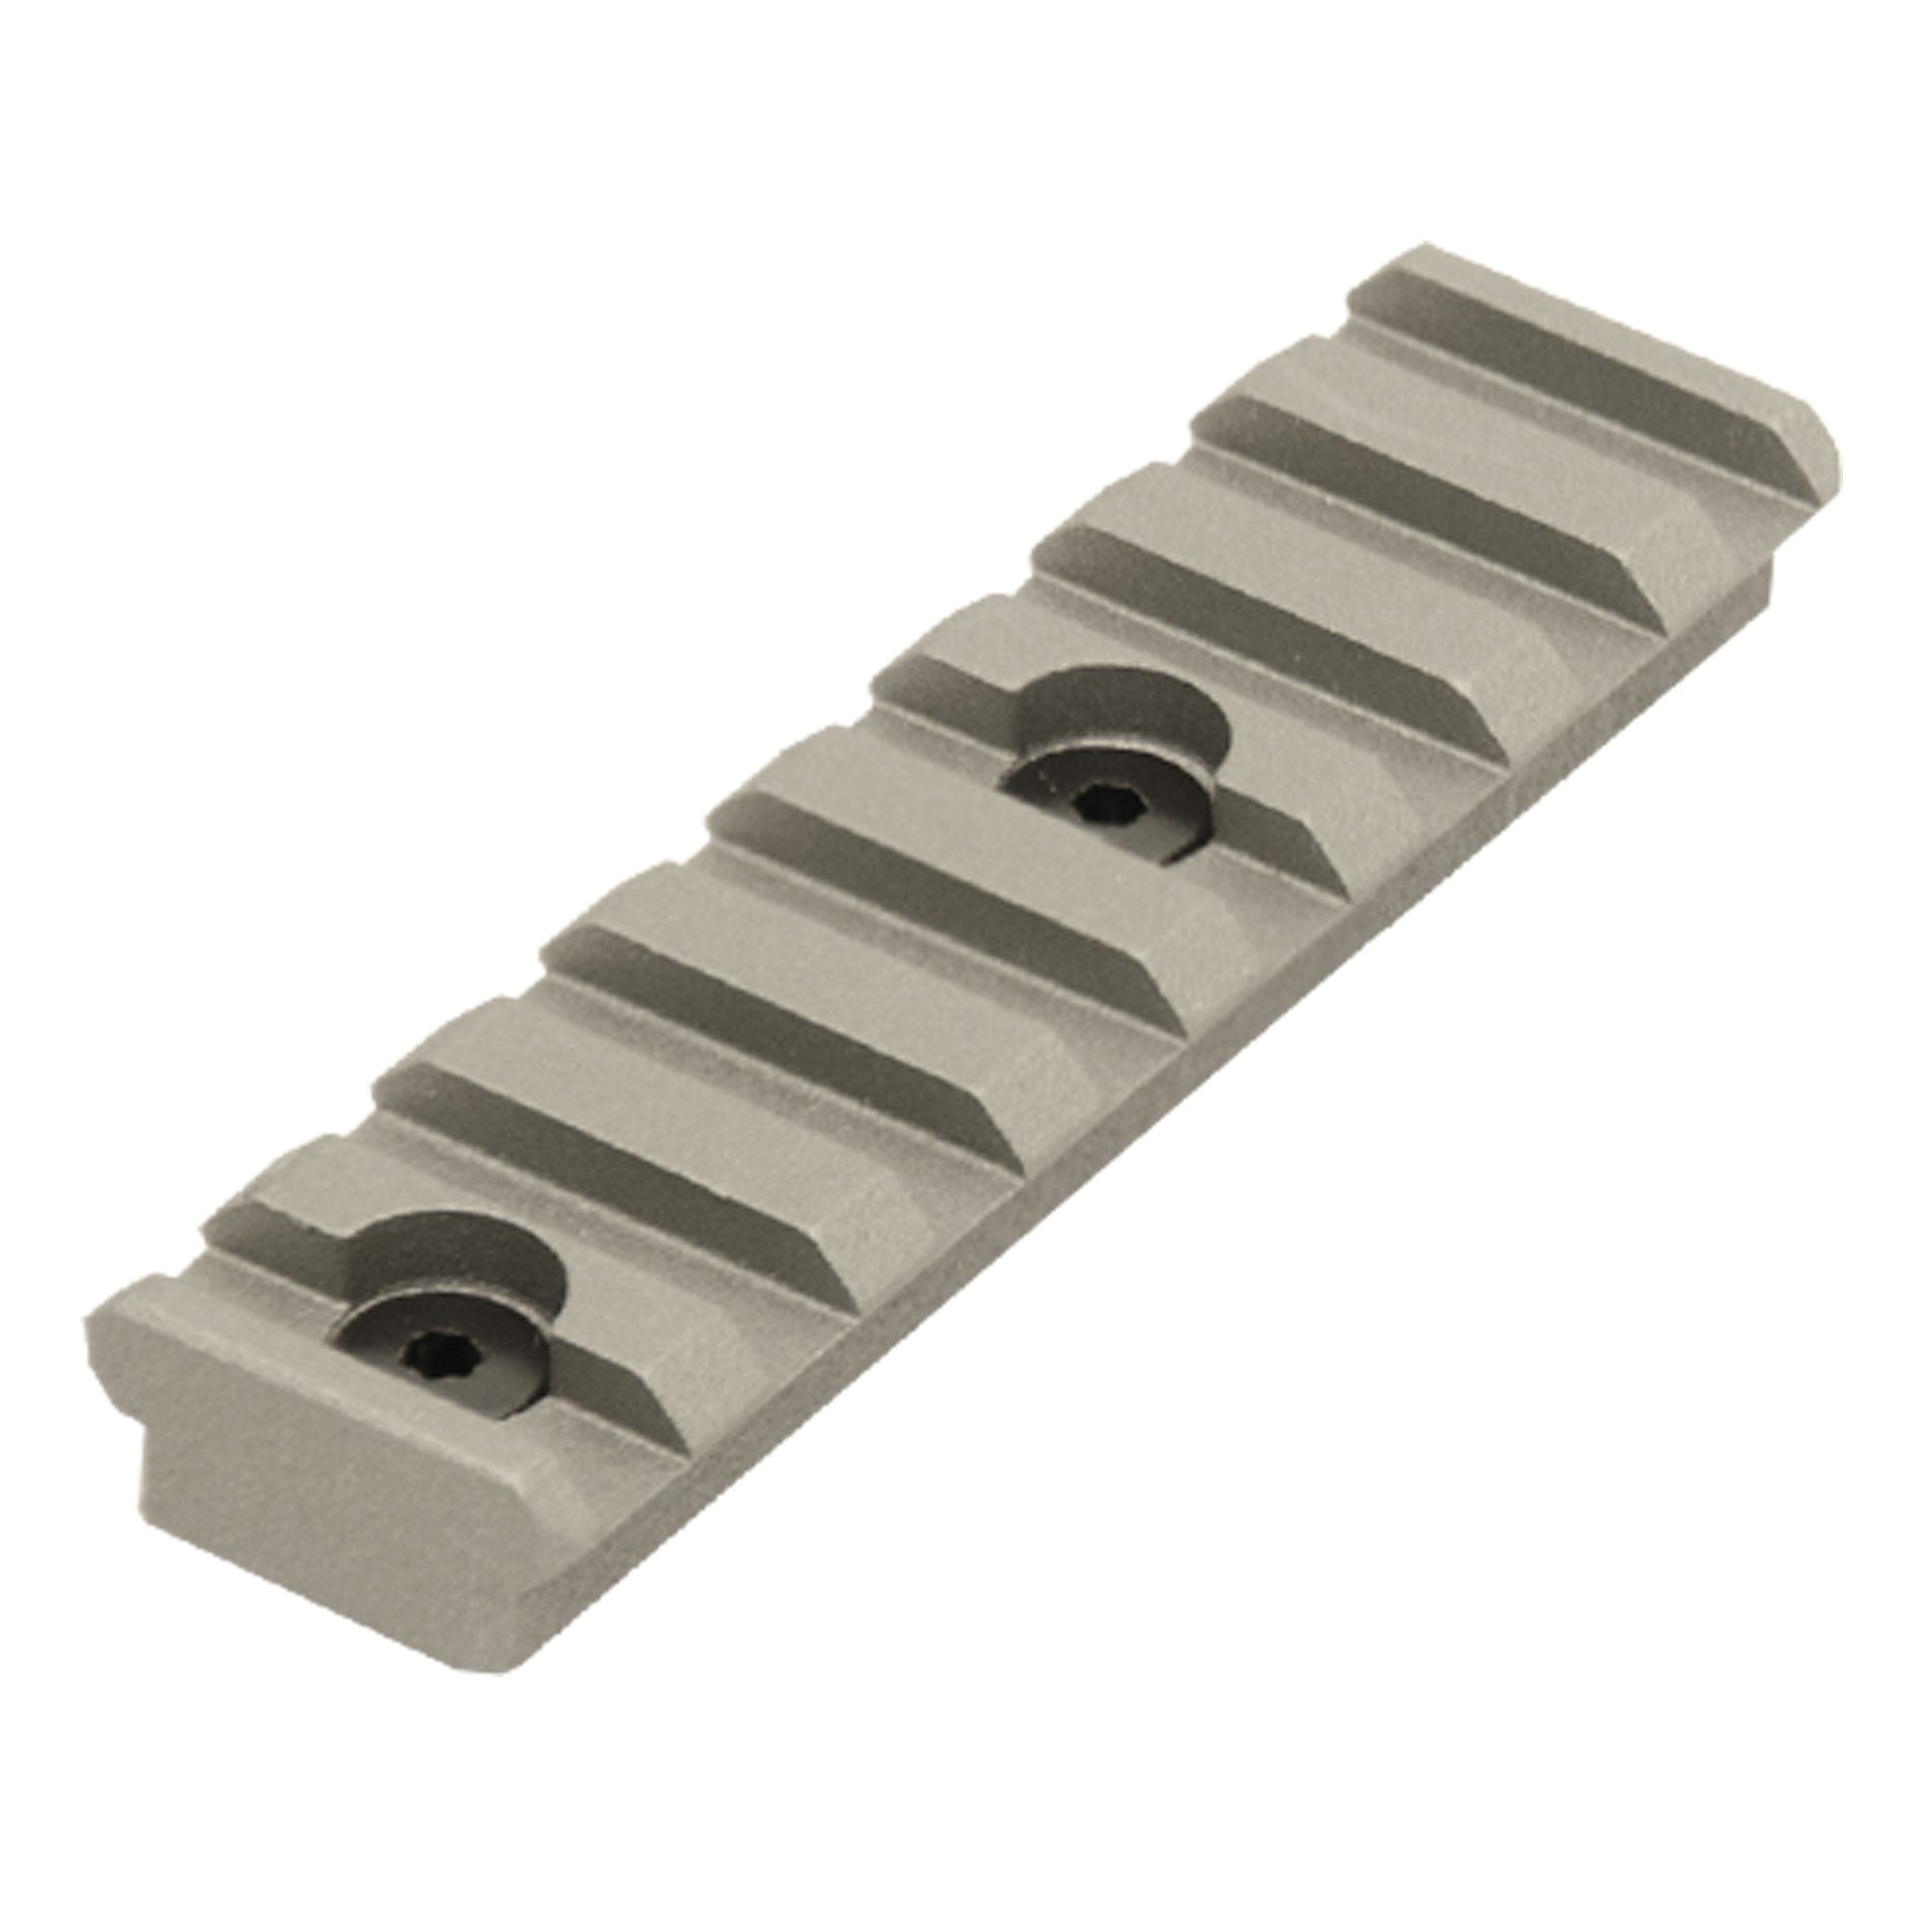 UTG PRO 8-Slot Keymod Picatinny Rail Section-Gun Metal Grey by UTG Pro